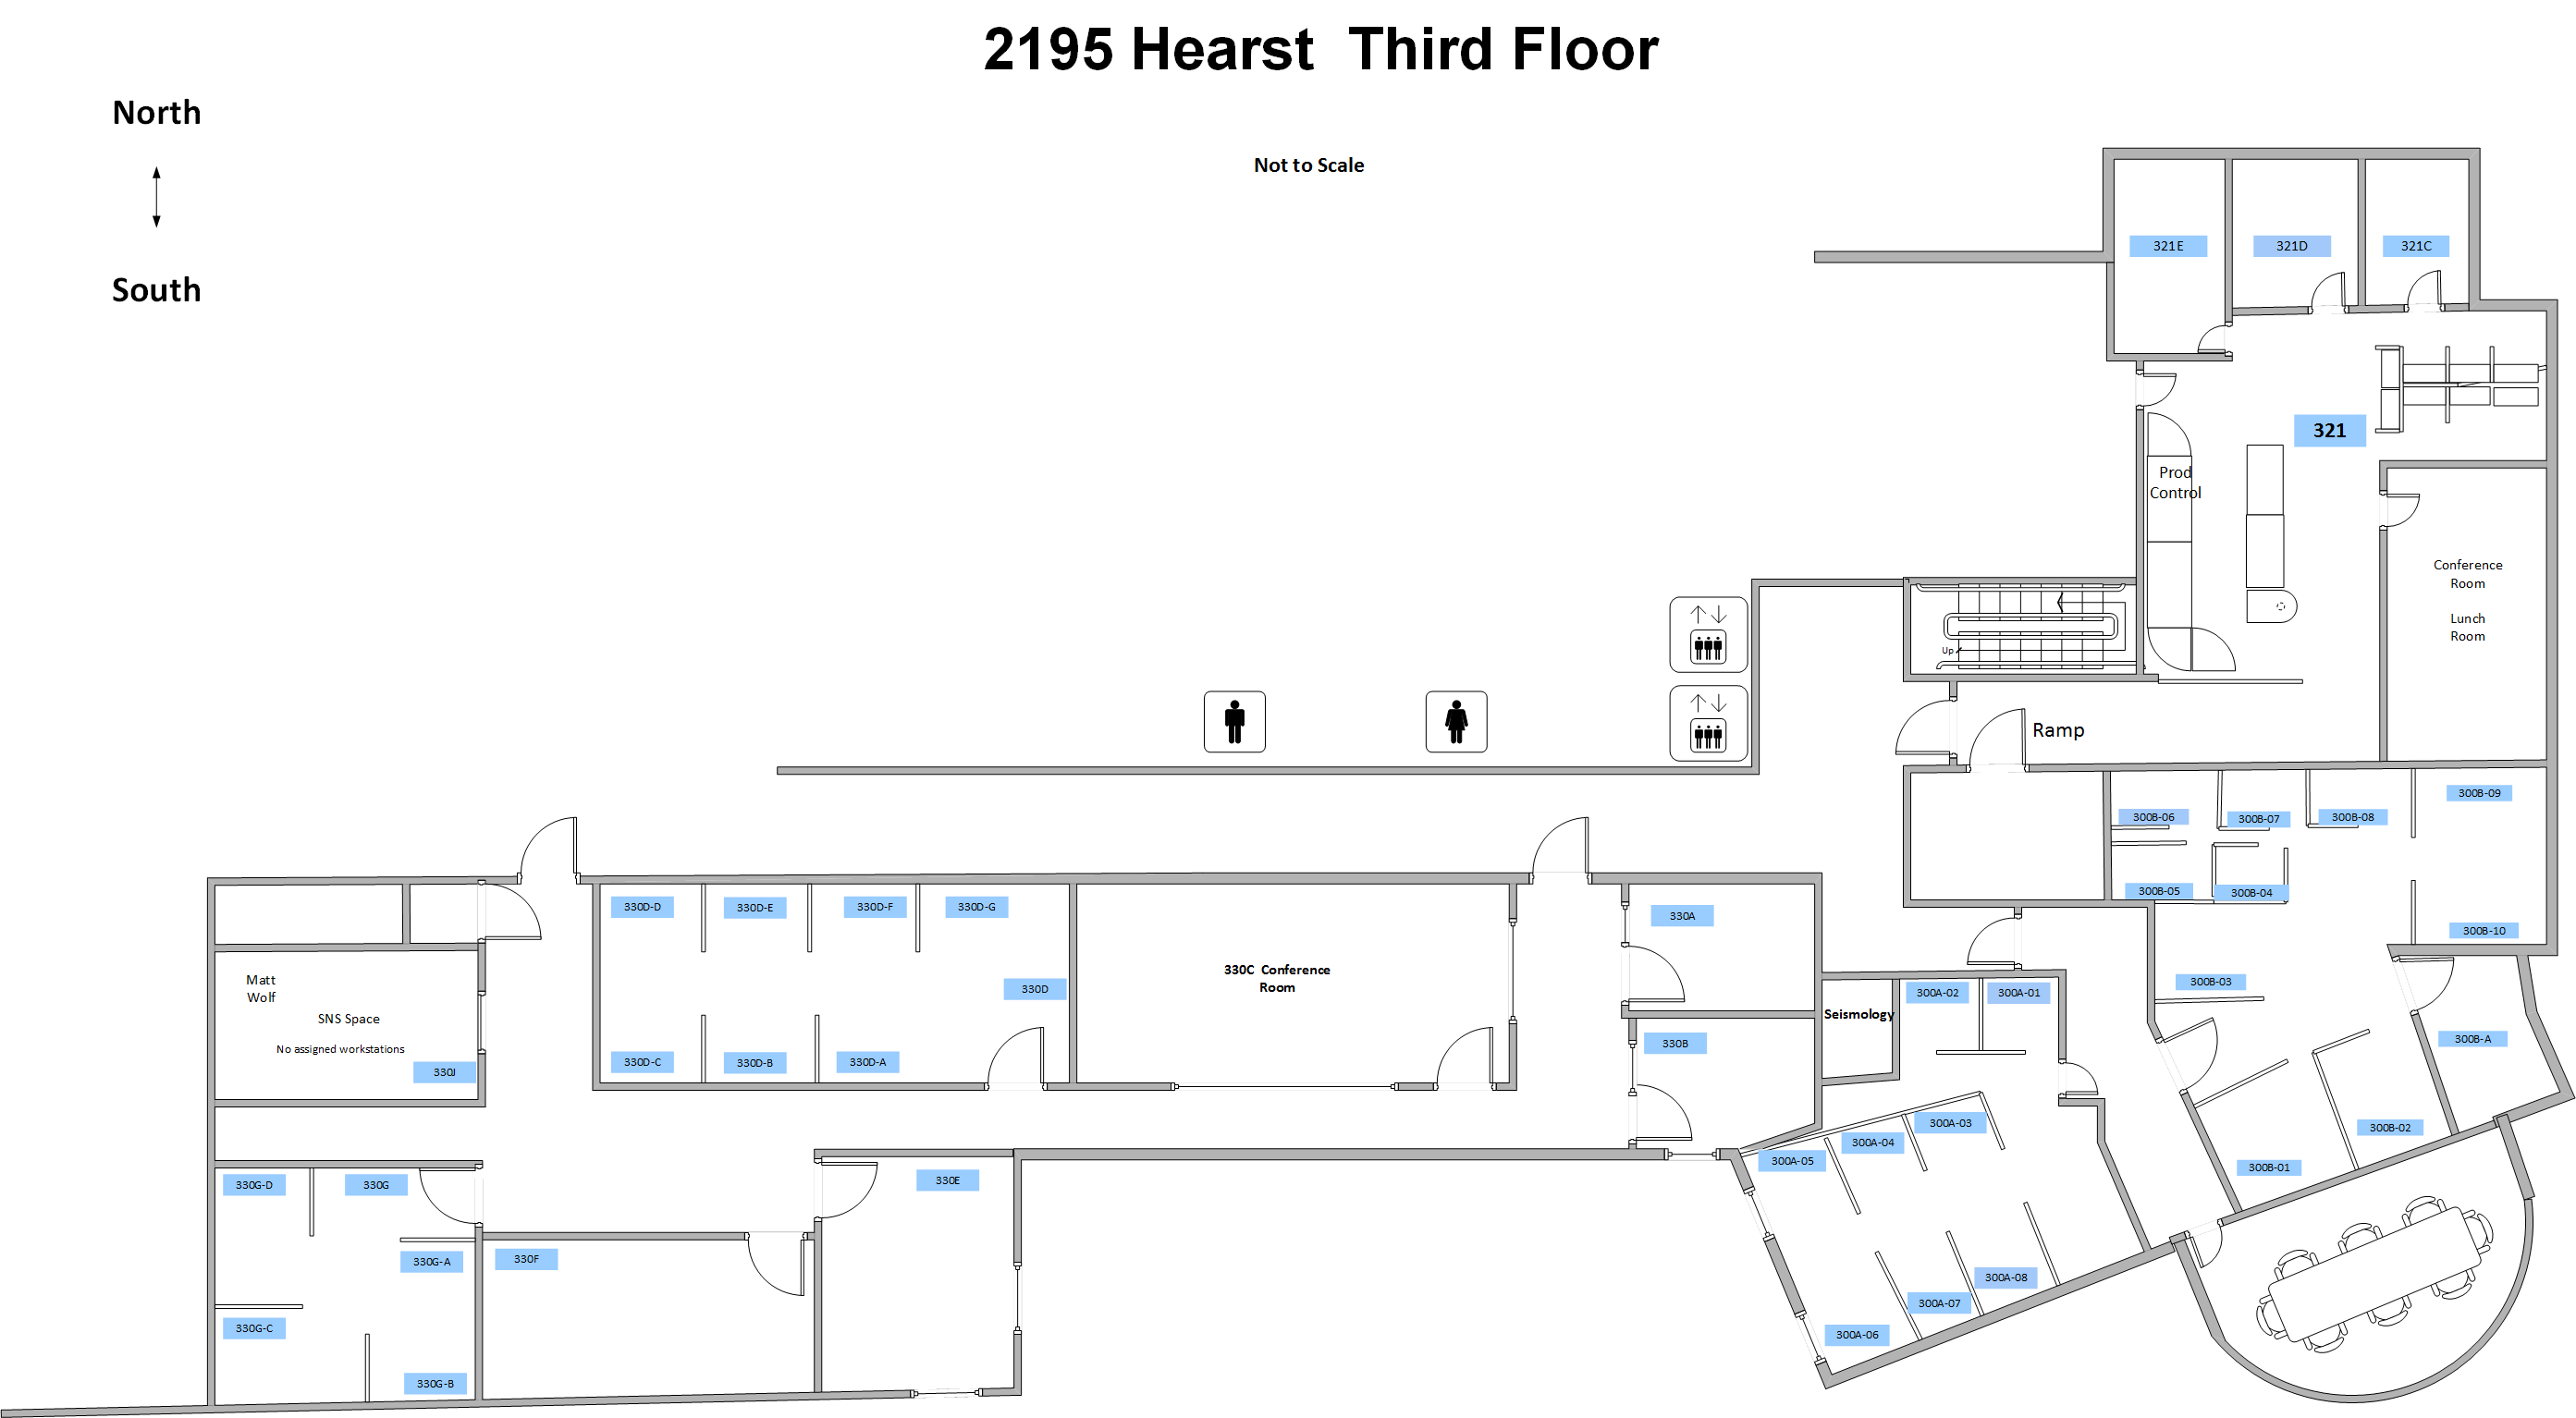 floor plan for 3rd floor of Earl Warren Hall